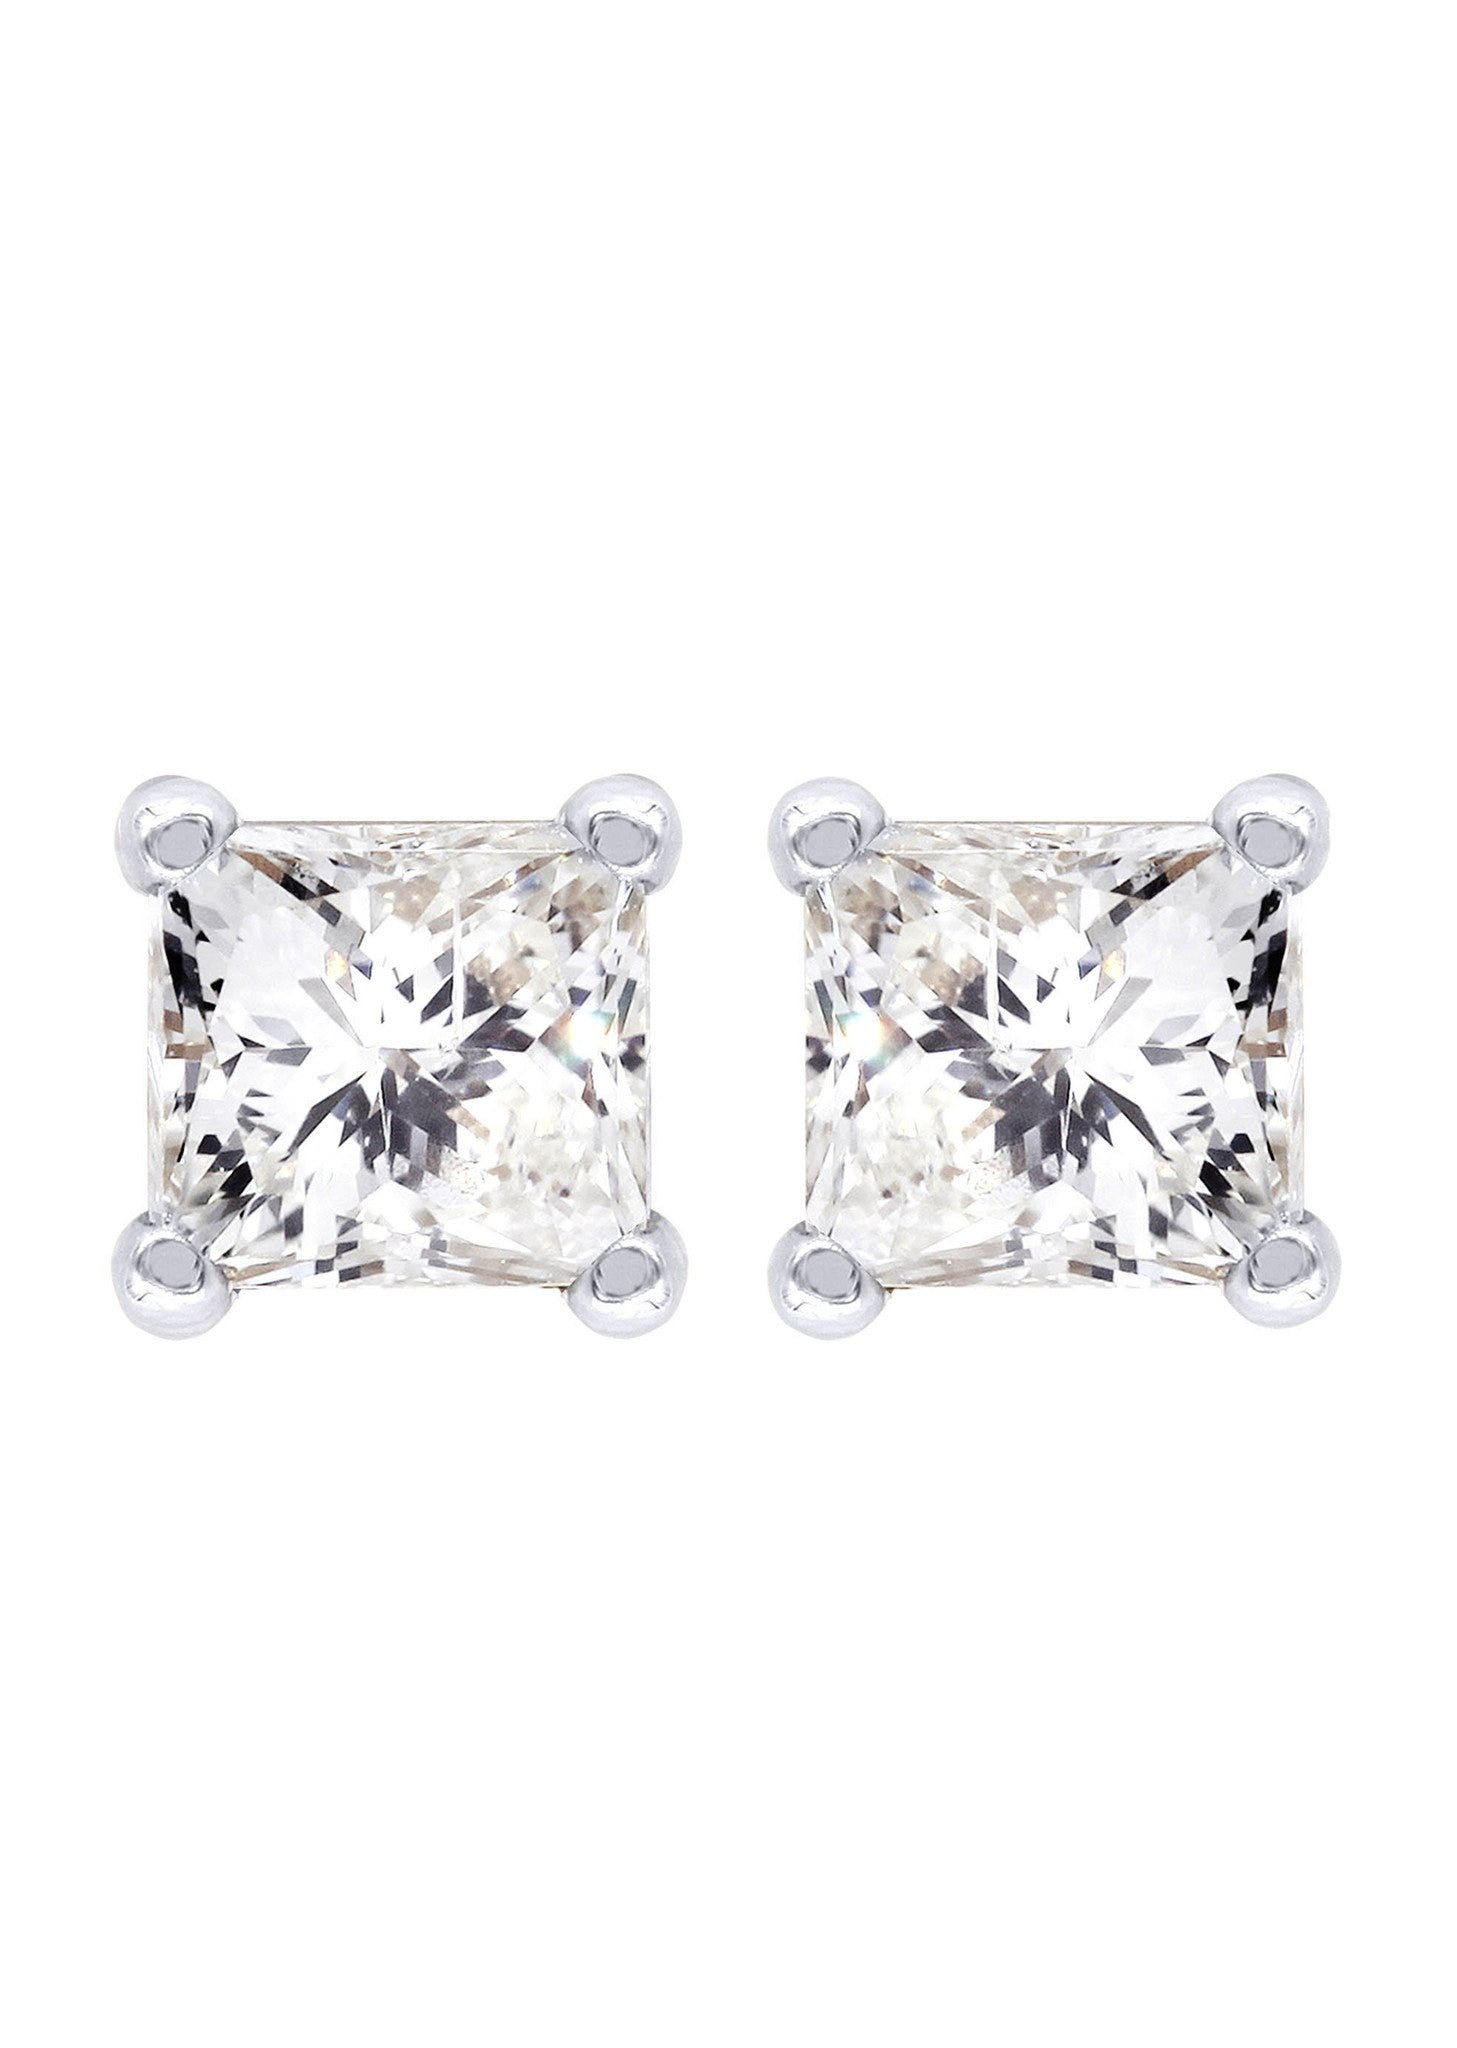 Princess Cut Diamond Stud Earrings For Men 14k White